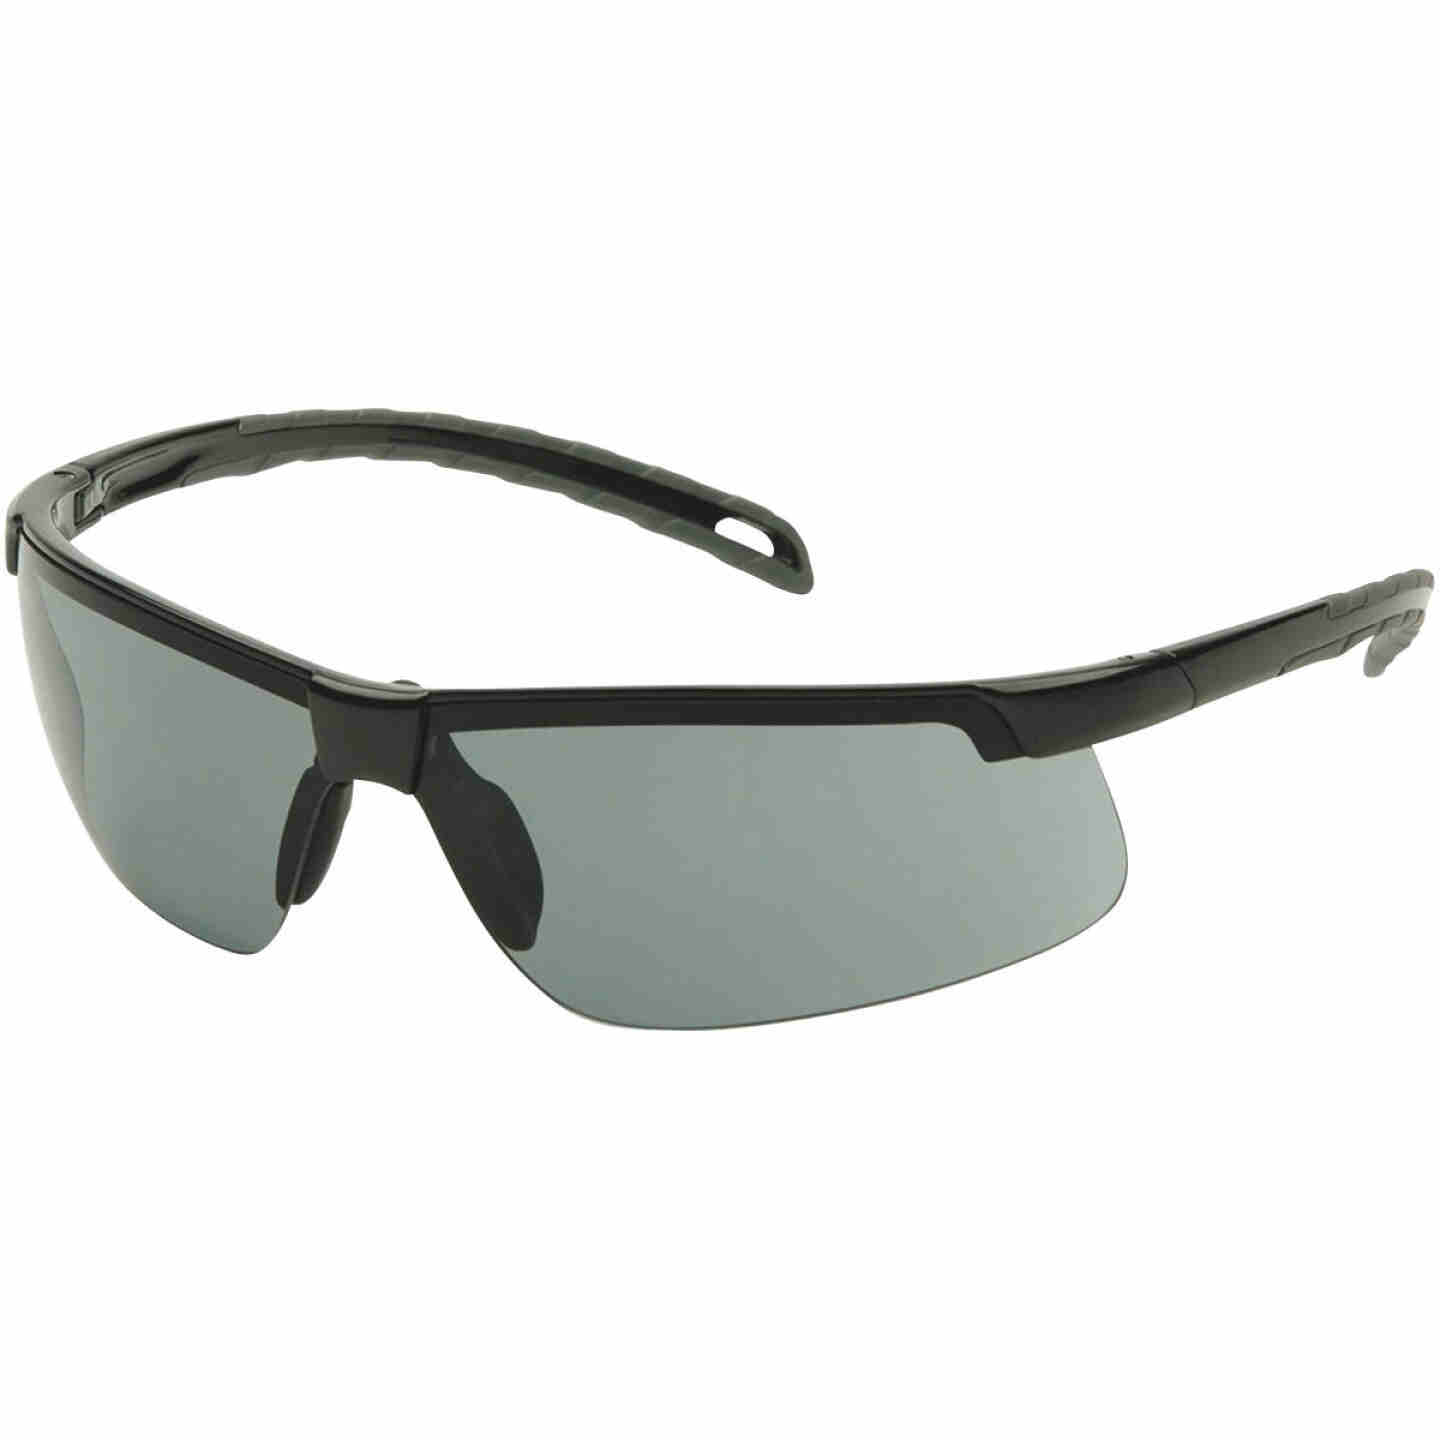 Pyramex Ever-Lite H2MAX Black Frame Safety Glasses with Gray Anti-Fog Lenses Image 1